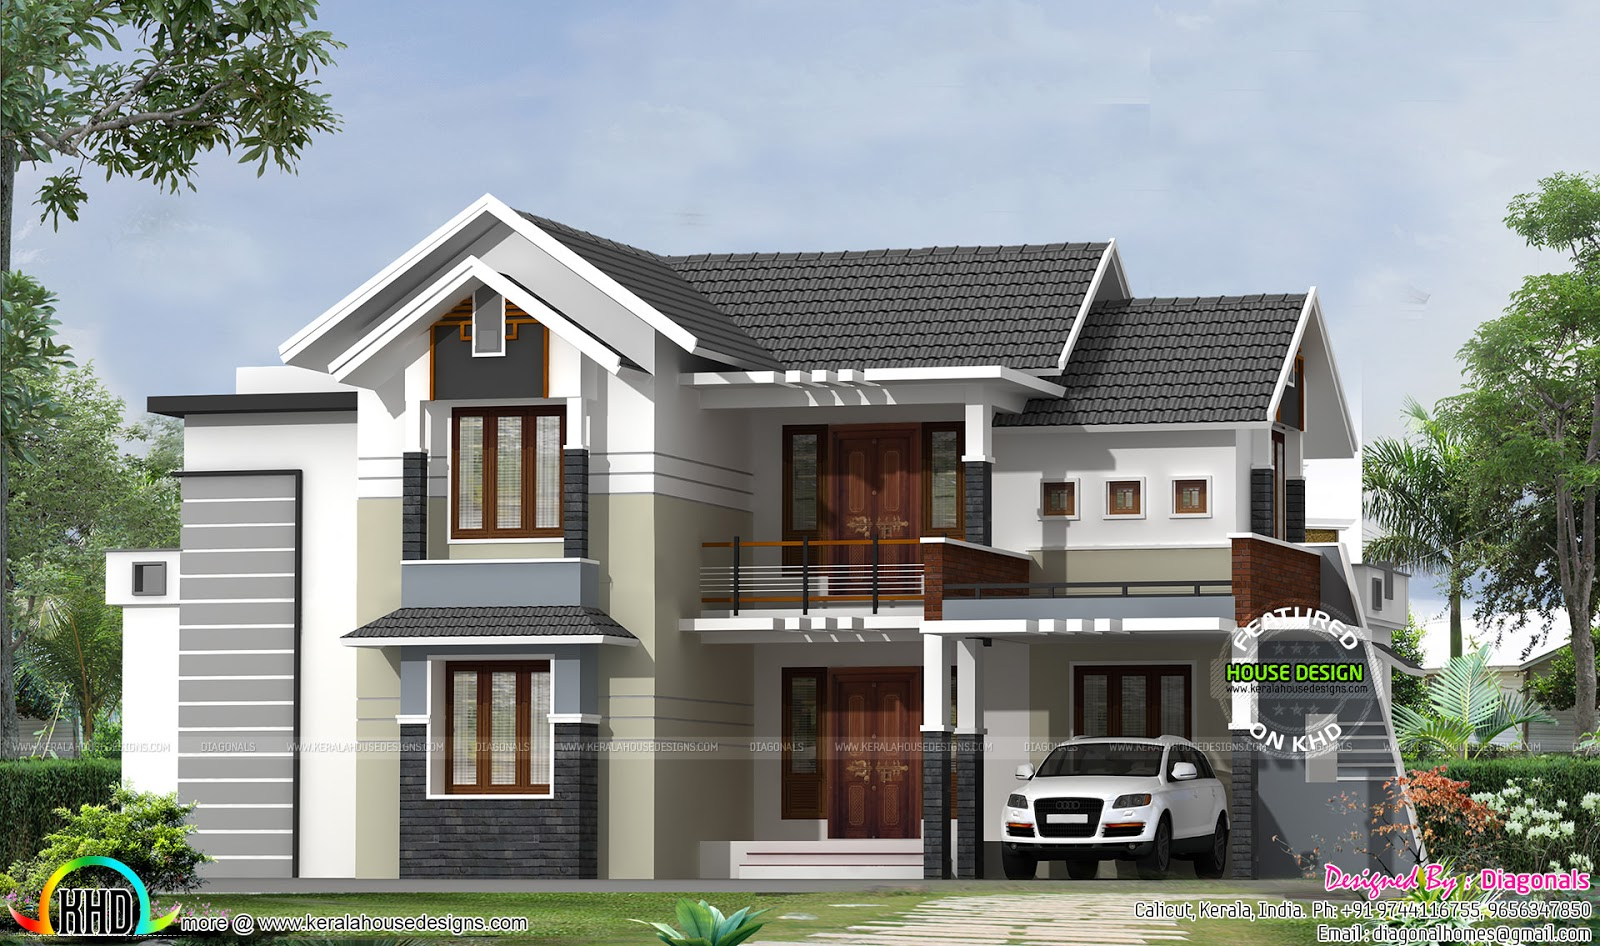 Modern mix traditional house architecture kerala home for Traditional house architecture